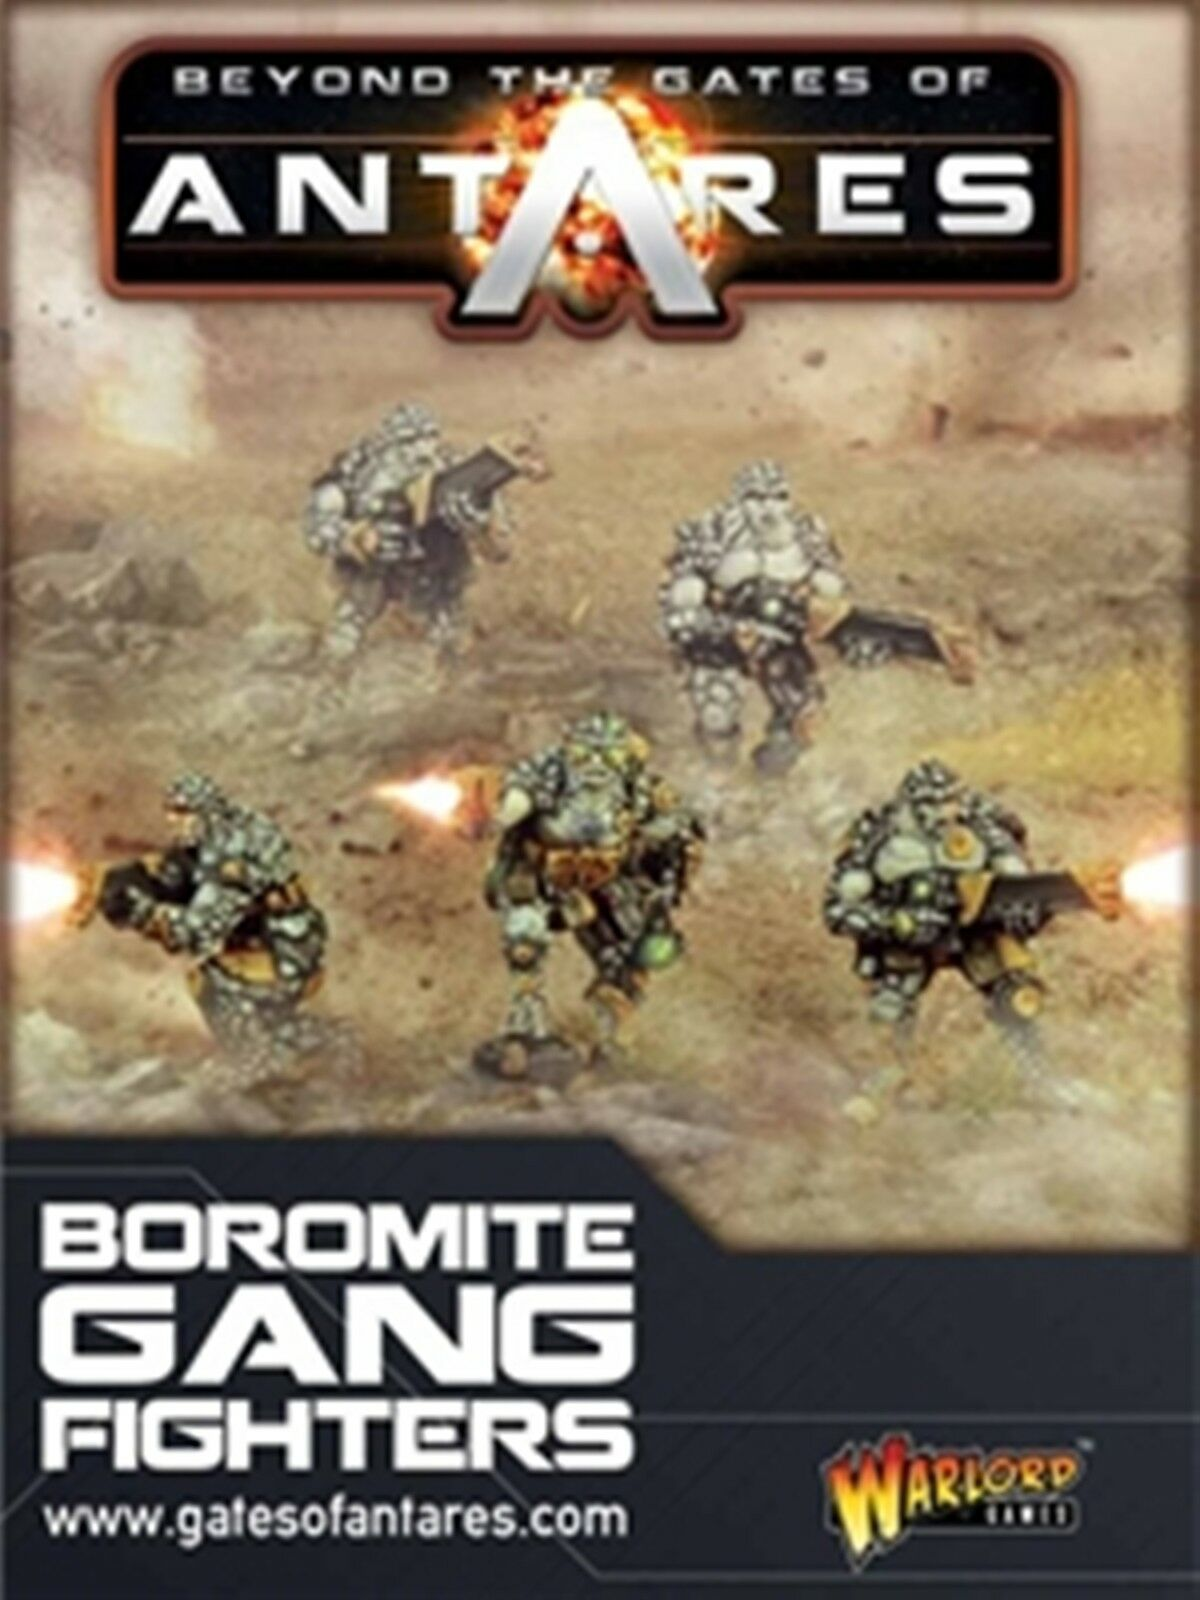 NEW GATES OF ANTARES BgoldMITE GANG FIGHTERS GAMES COLLECTIBLE FIGURE WGA-BOR-02